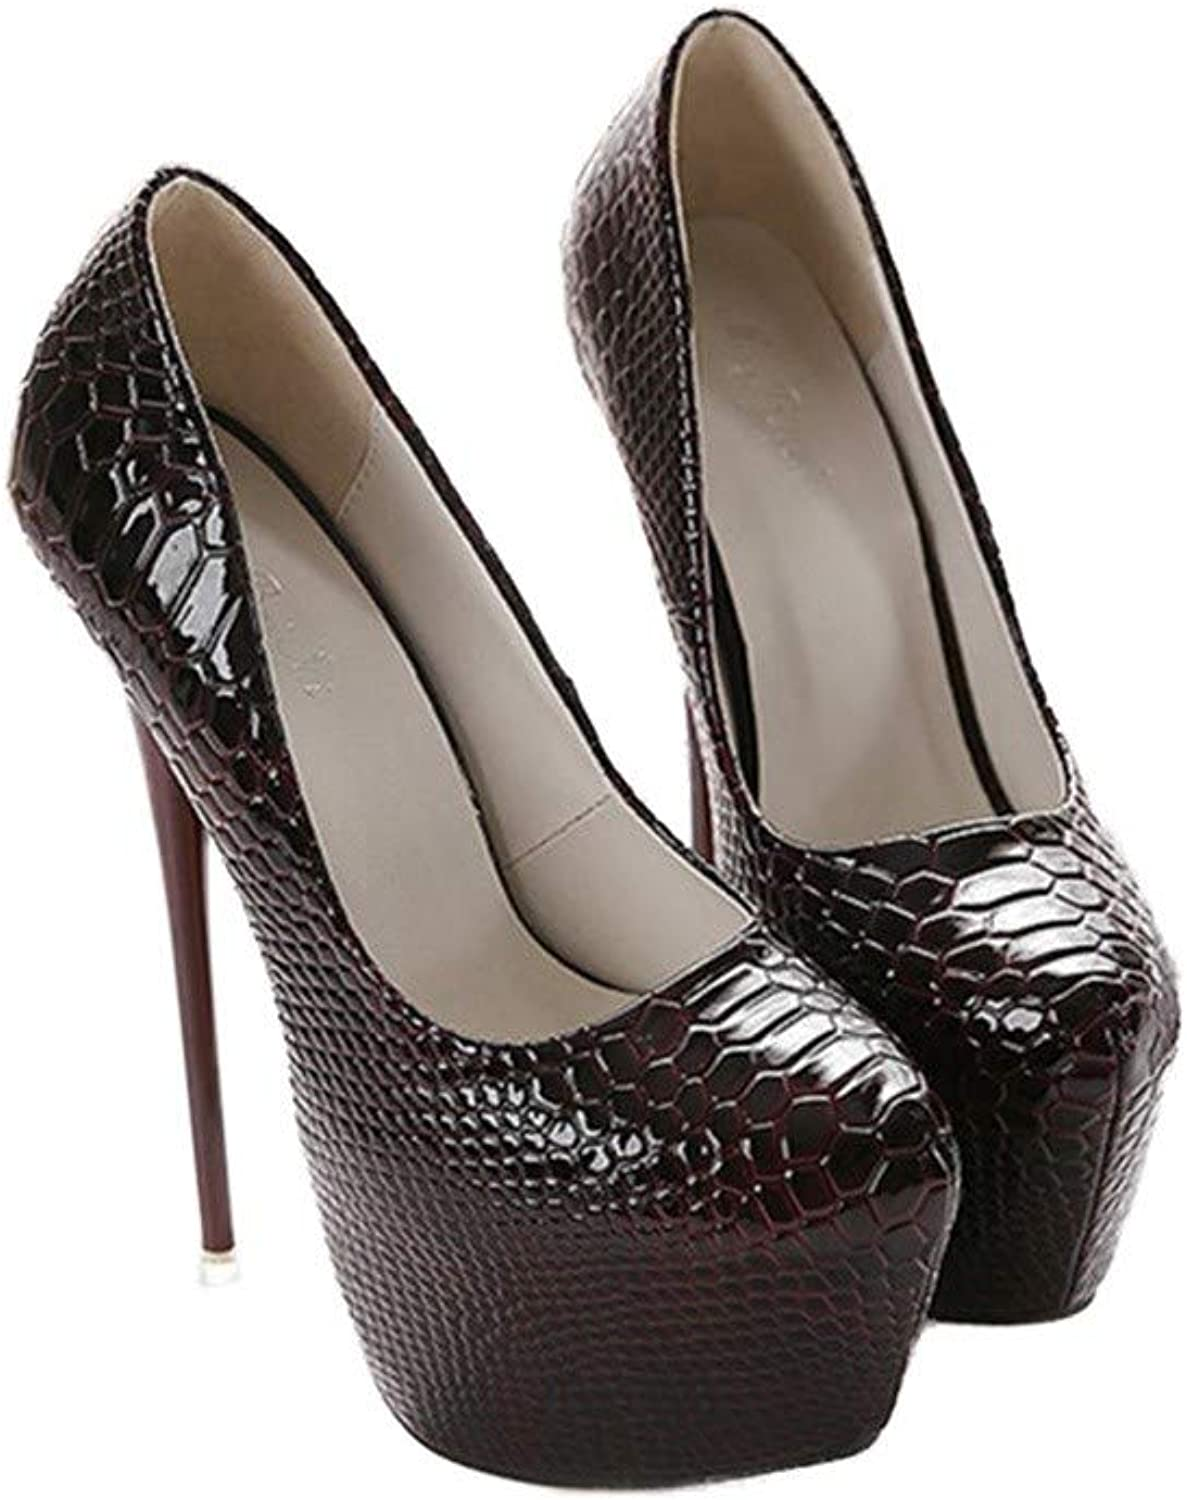 QIYUN.Z Women Fashion Solid color Patent Leather Sexy Serpentine Waterproof Extra-high Heel shoes